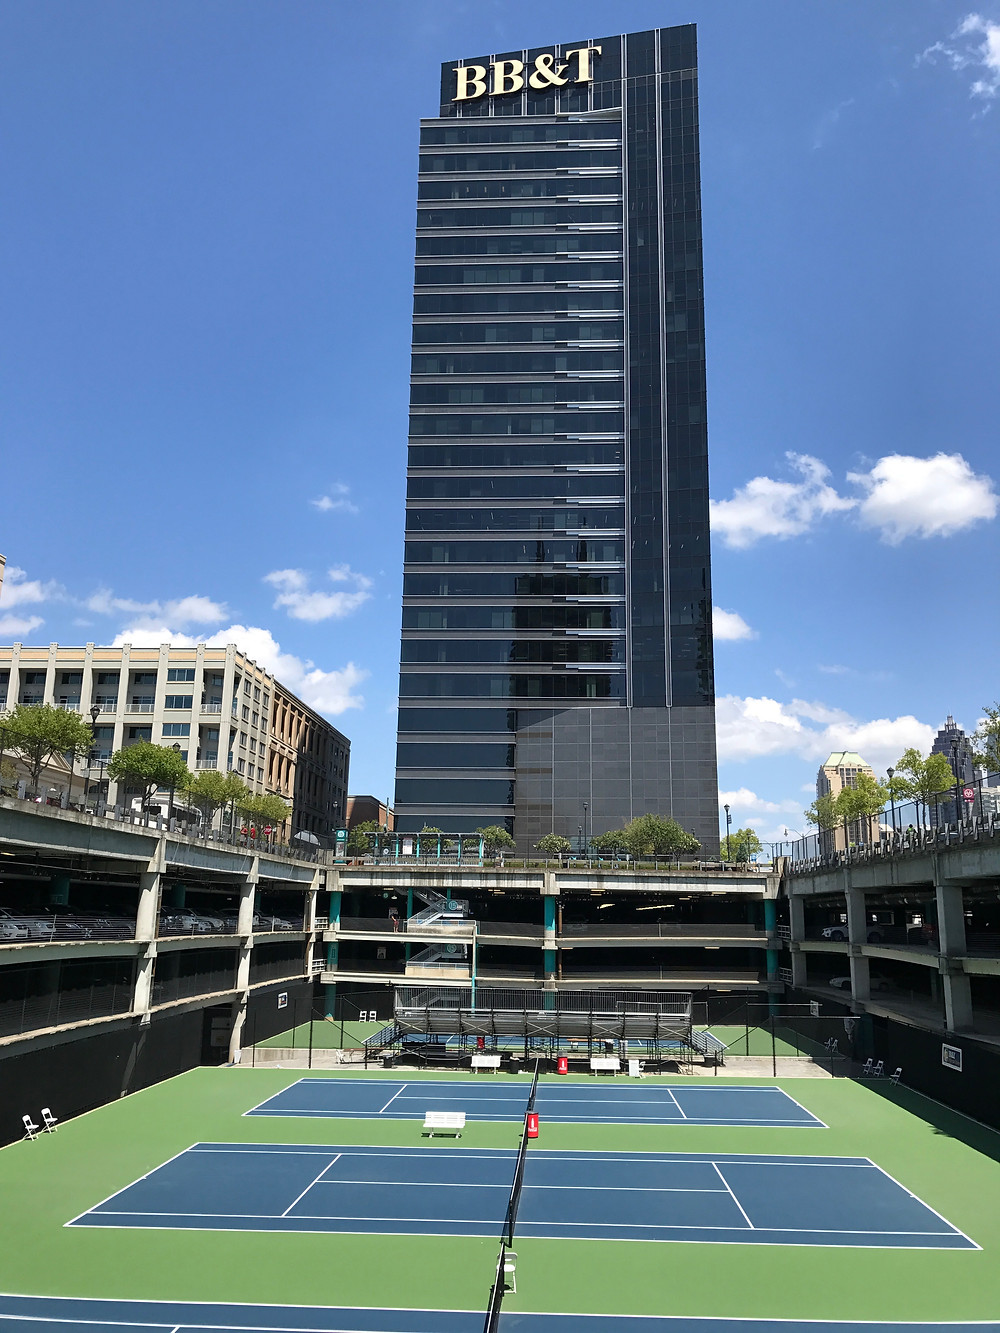 The tennis tournament, BB&T Atlanta Open, is held annually in Atlantic Station